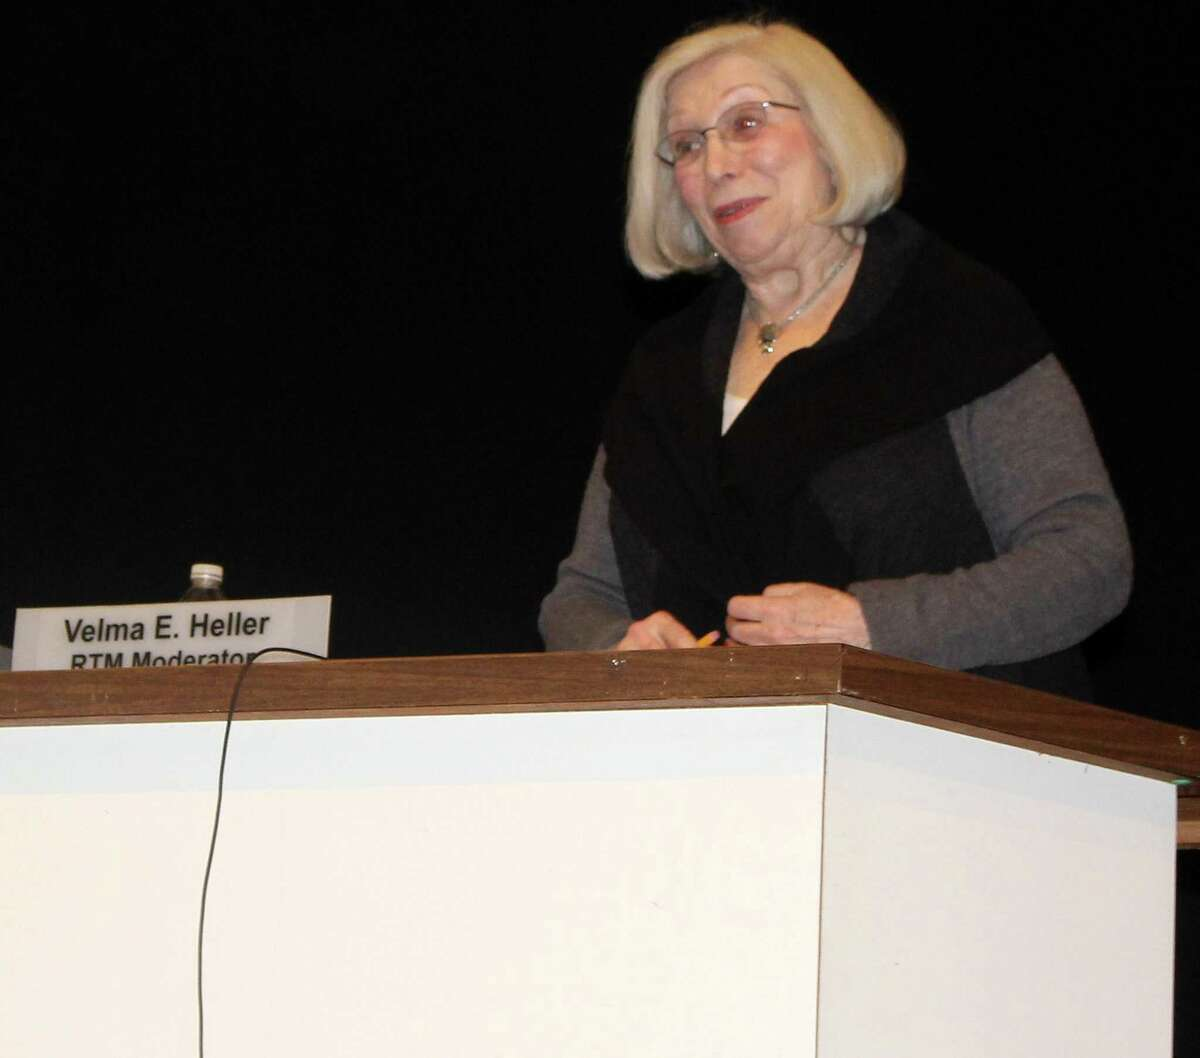 District 9 RTM member Dr. Velma Heller is the current moderator for the Representative Town Meeting.